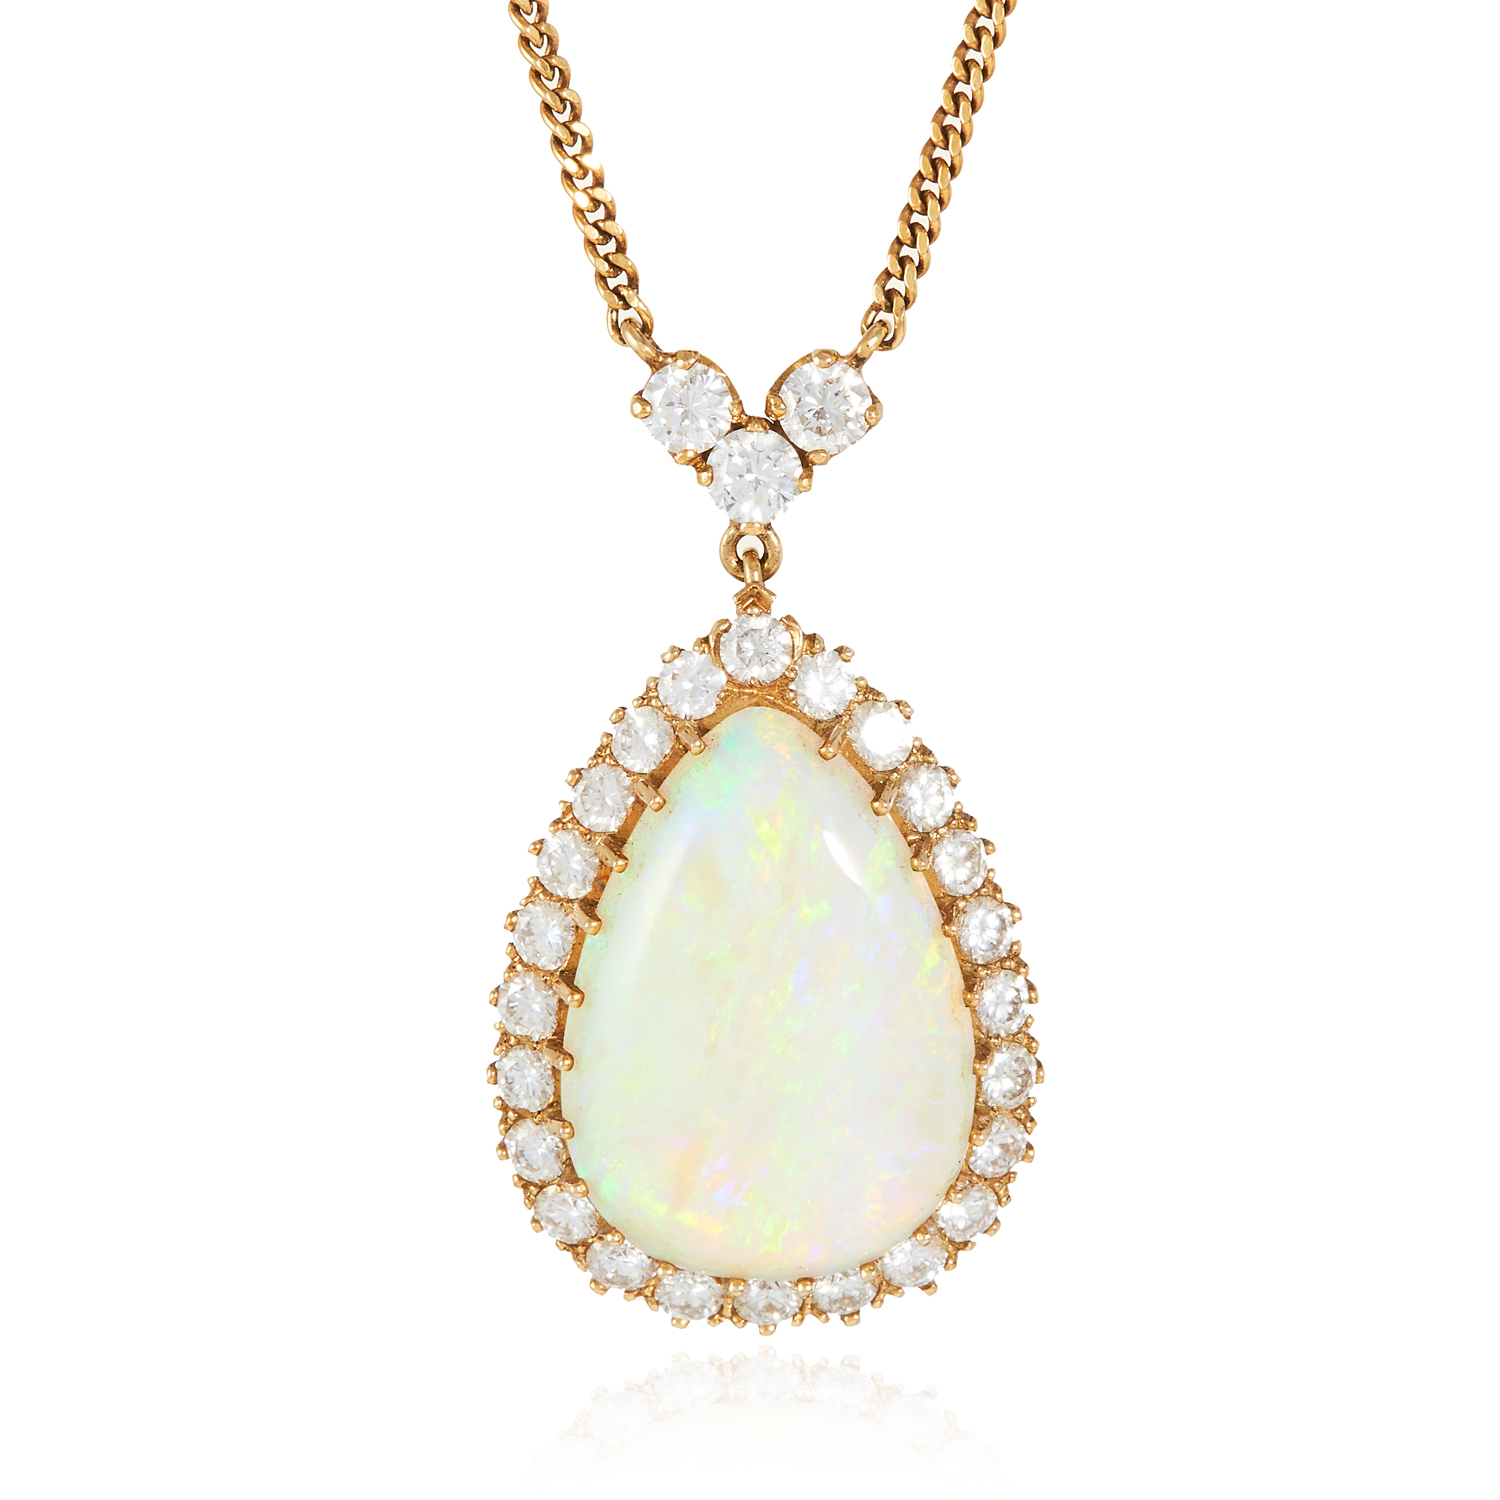 AN OPAL AND DIAMOND PENDANT NECKLACE in 18ct yellow gold, the large pear shaped cabochon encircled